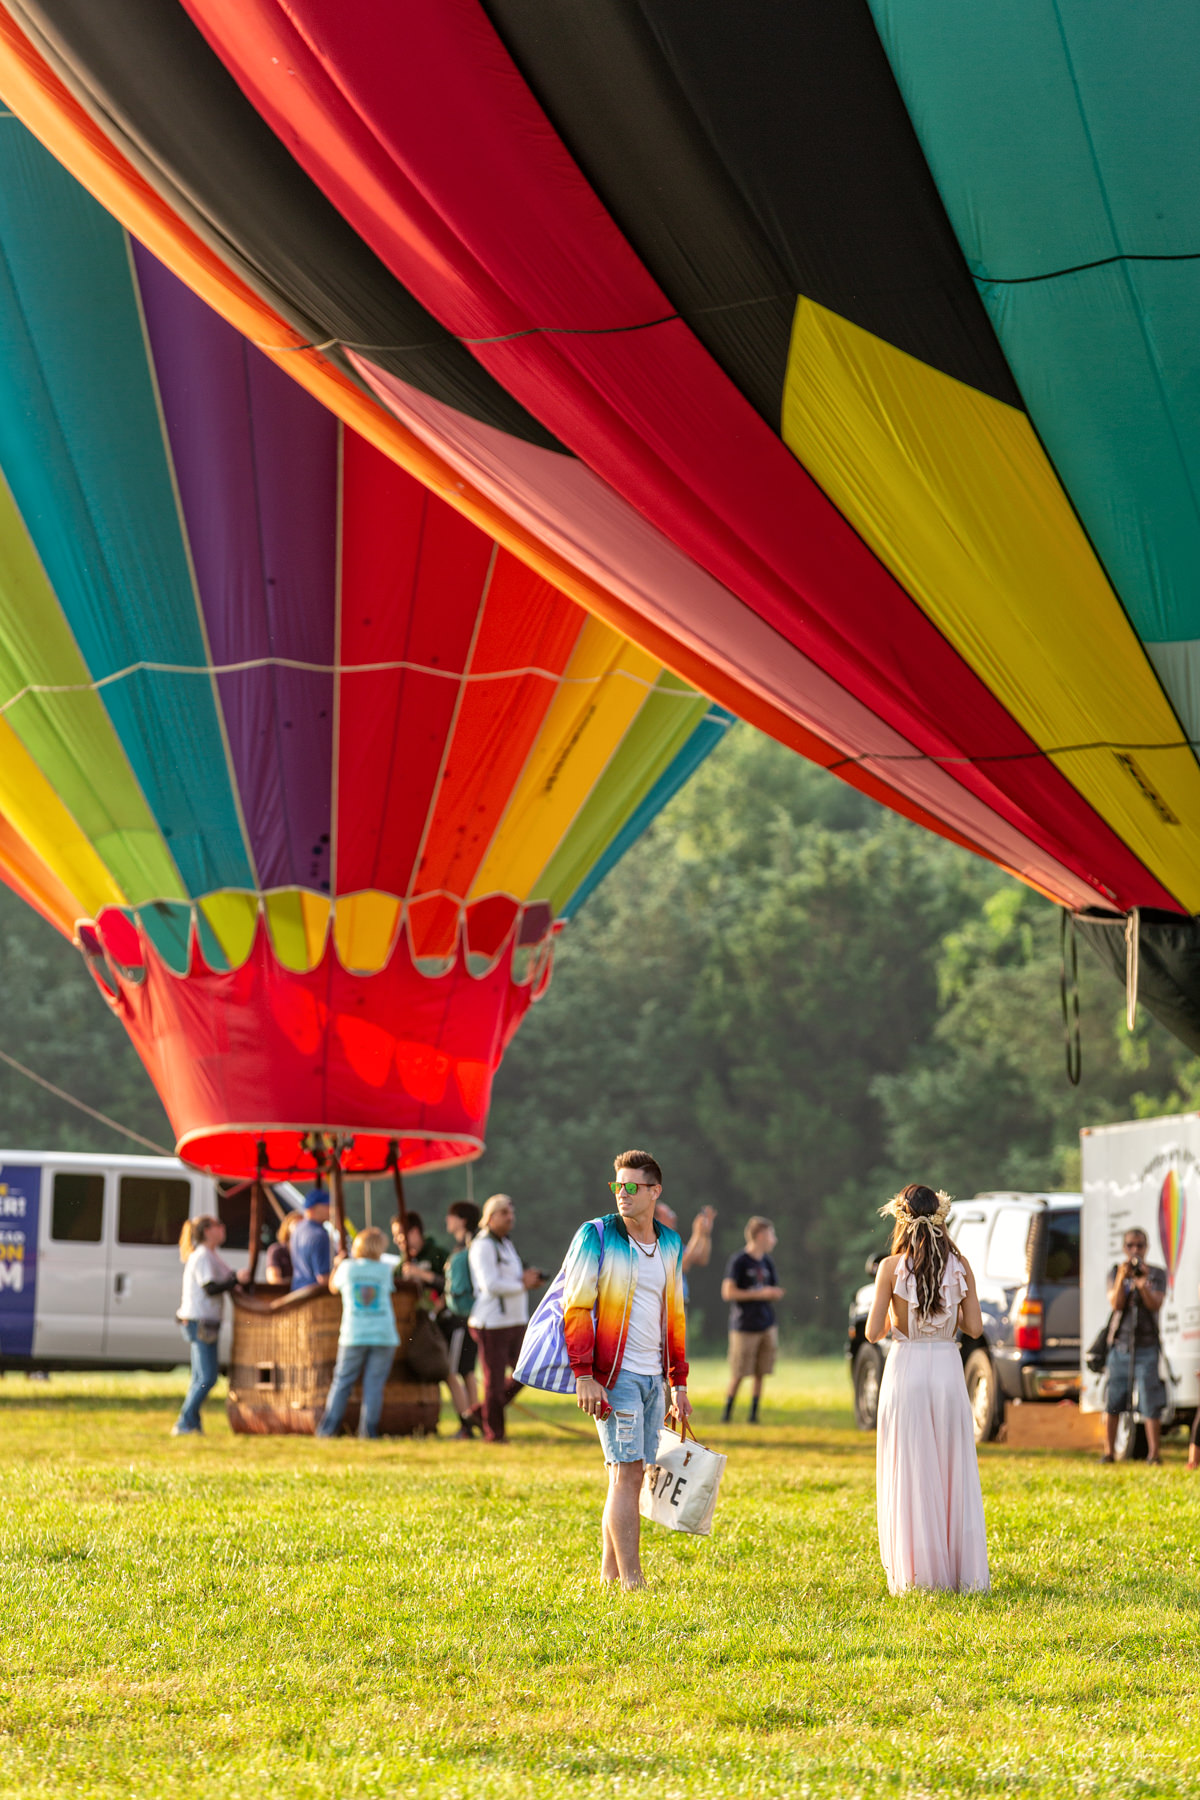 QuickChek Festival of Ballooning pre festival Media Launch QuickChek Festival of Ballooning Media Launch Canon EOS 5D Mark III 20180727 6927 Edit blog